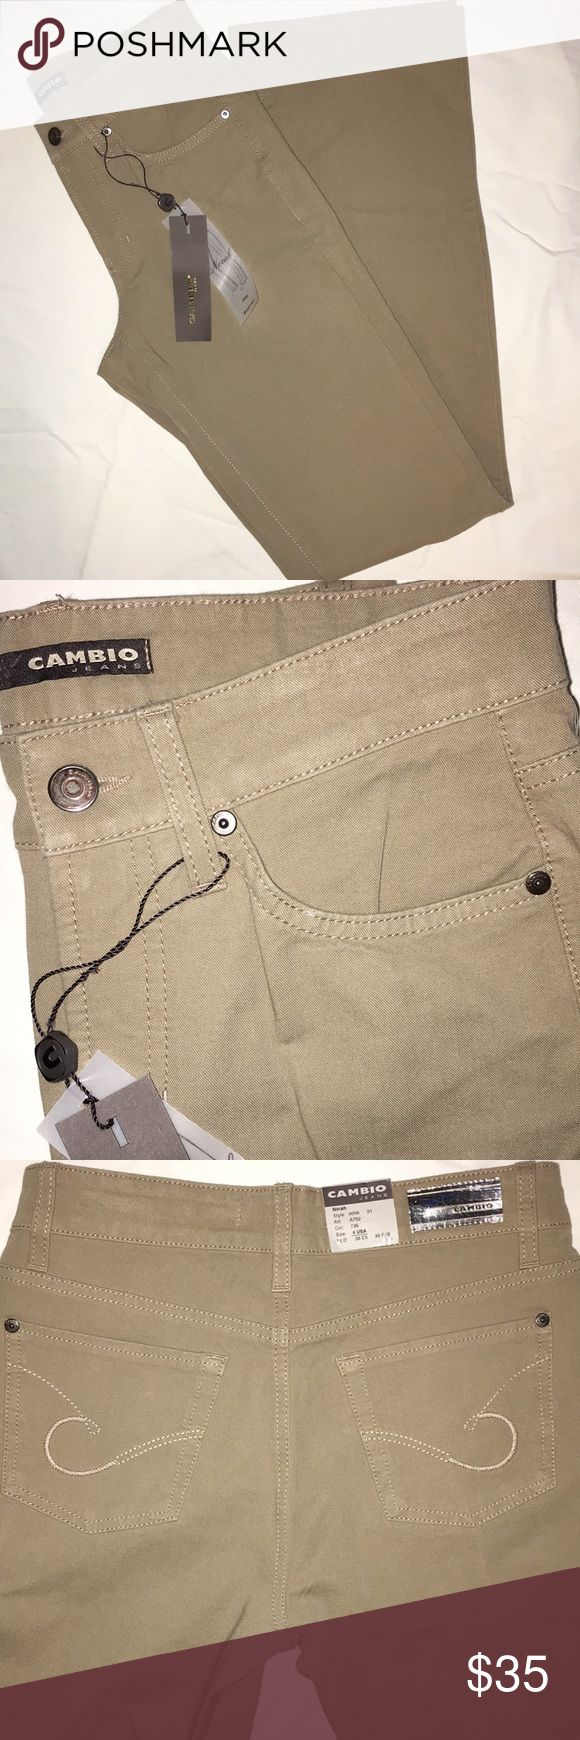 """Khaki Cambio """"Norah"""" bootcut jean Longer, 34"""" inseam, 93% cotton, 7% elastane. 5 pocket style with belt loops. Flattering cut. Color is khaki; note: last two photos are indications of identical cut, not color. Cambio Jeans Boot Cut"""